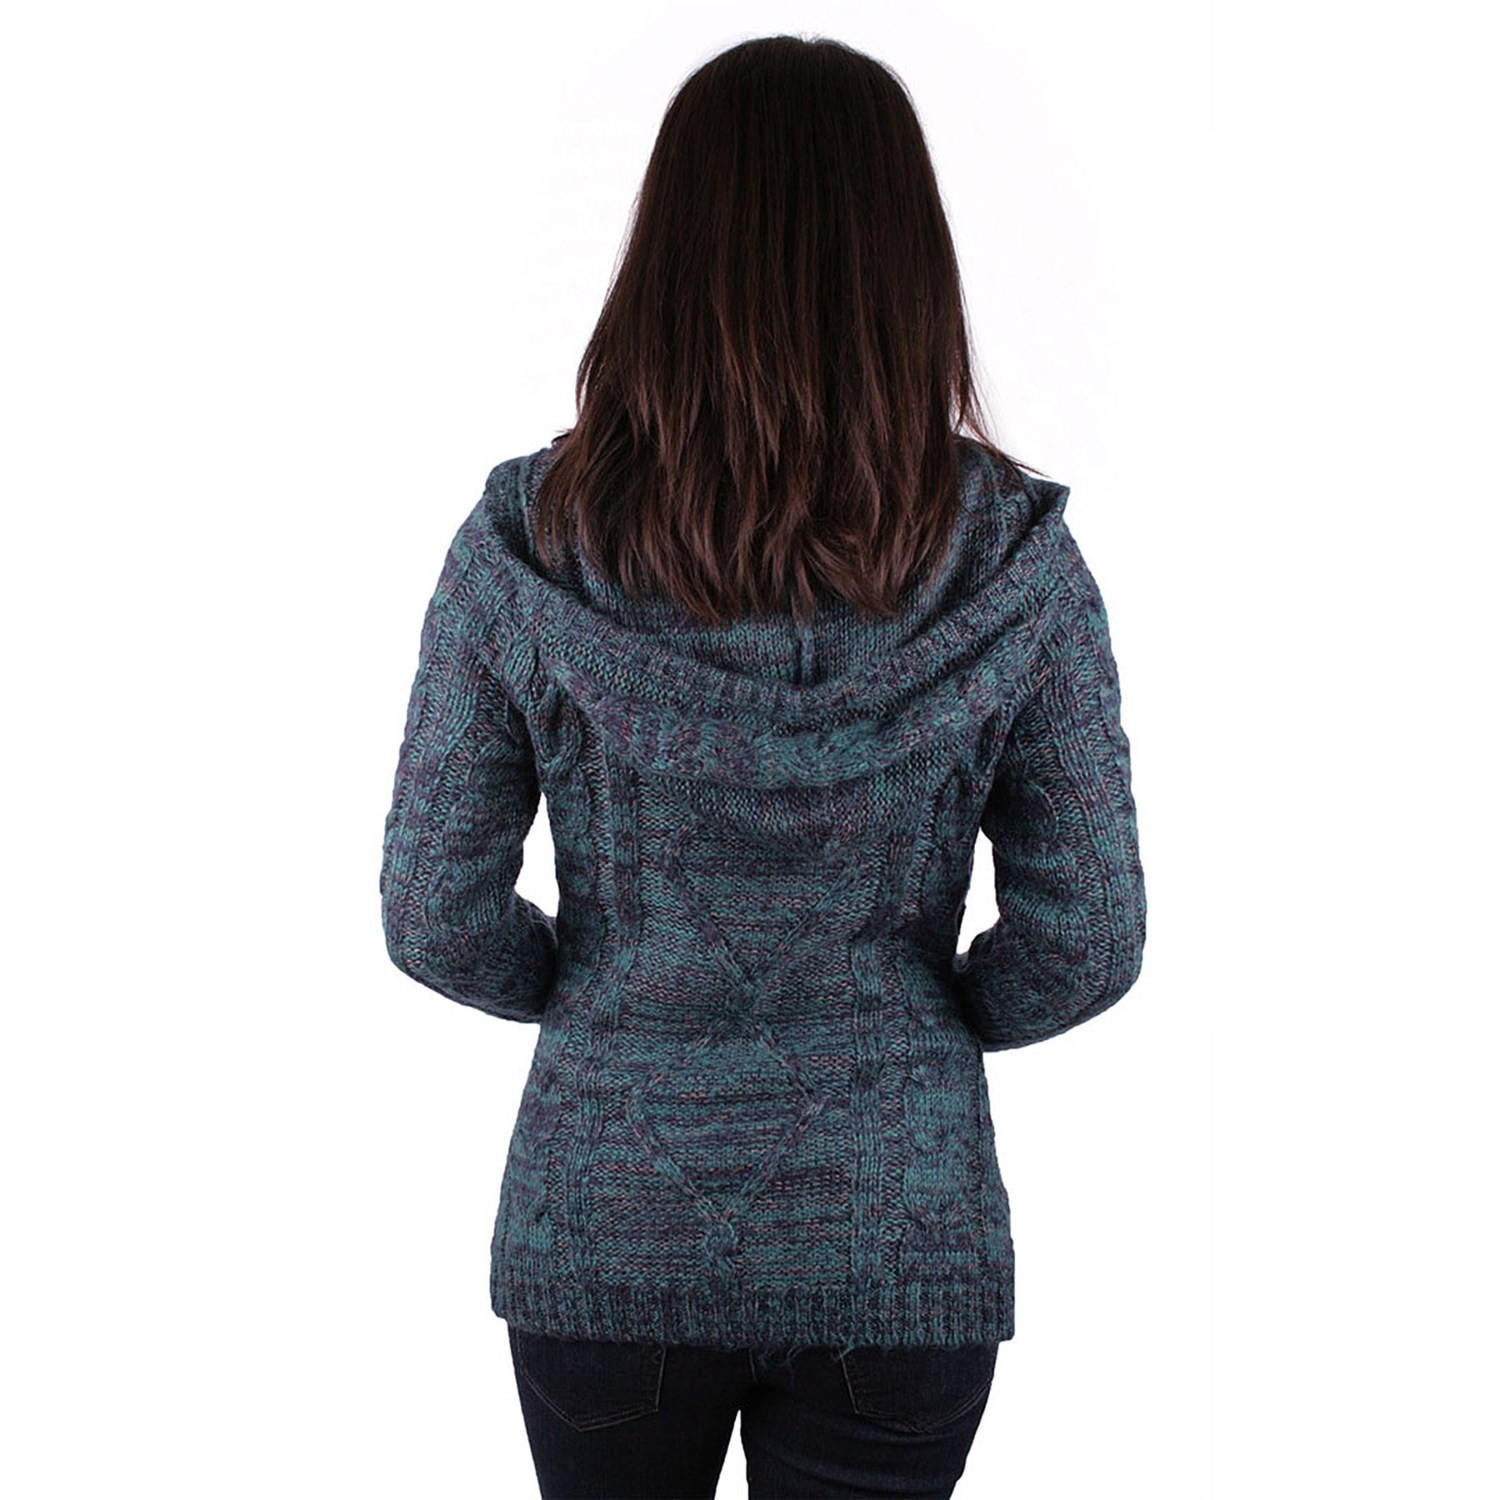 Womens Cable Knit Sweater Elegant Ethyl Cable Knit Cardigan Sweater for Women 7213f Save Of Innovative 44 Pics Womens Cable Knit Sweater